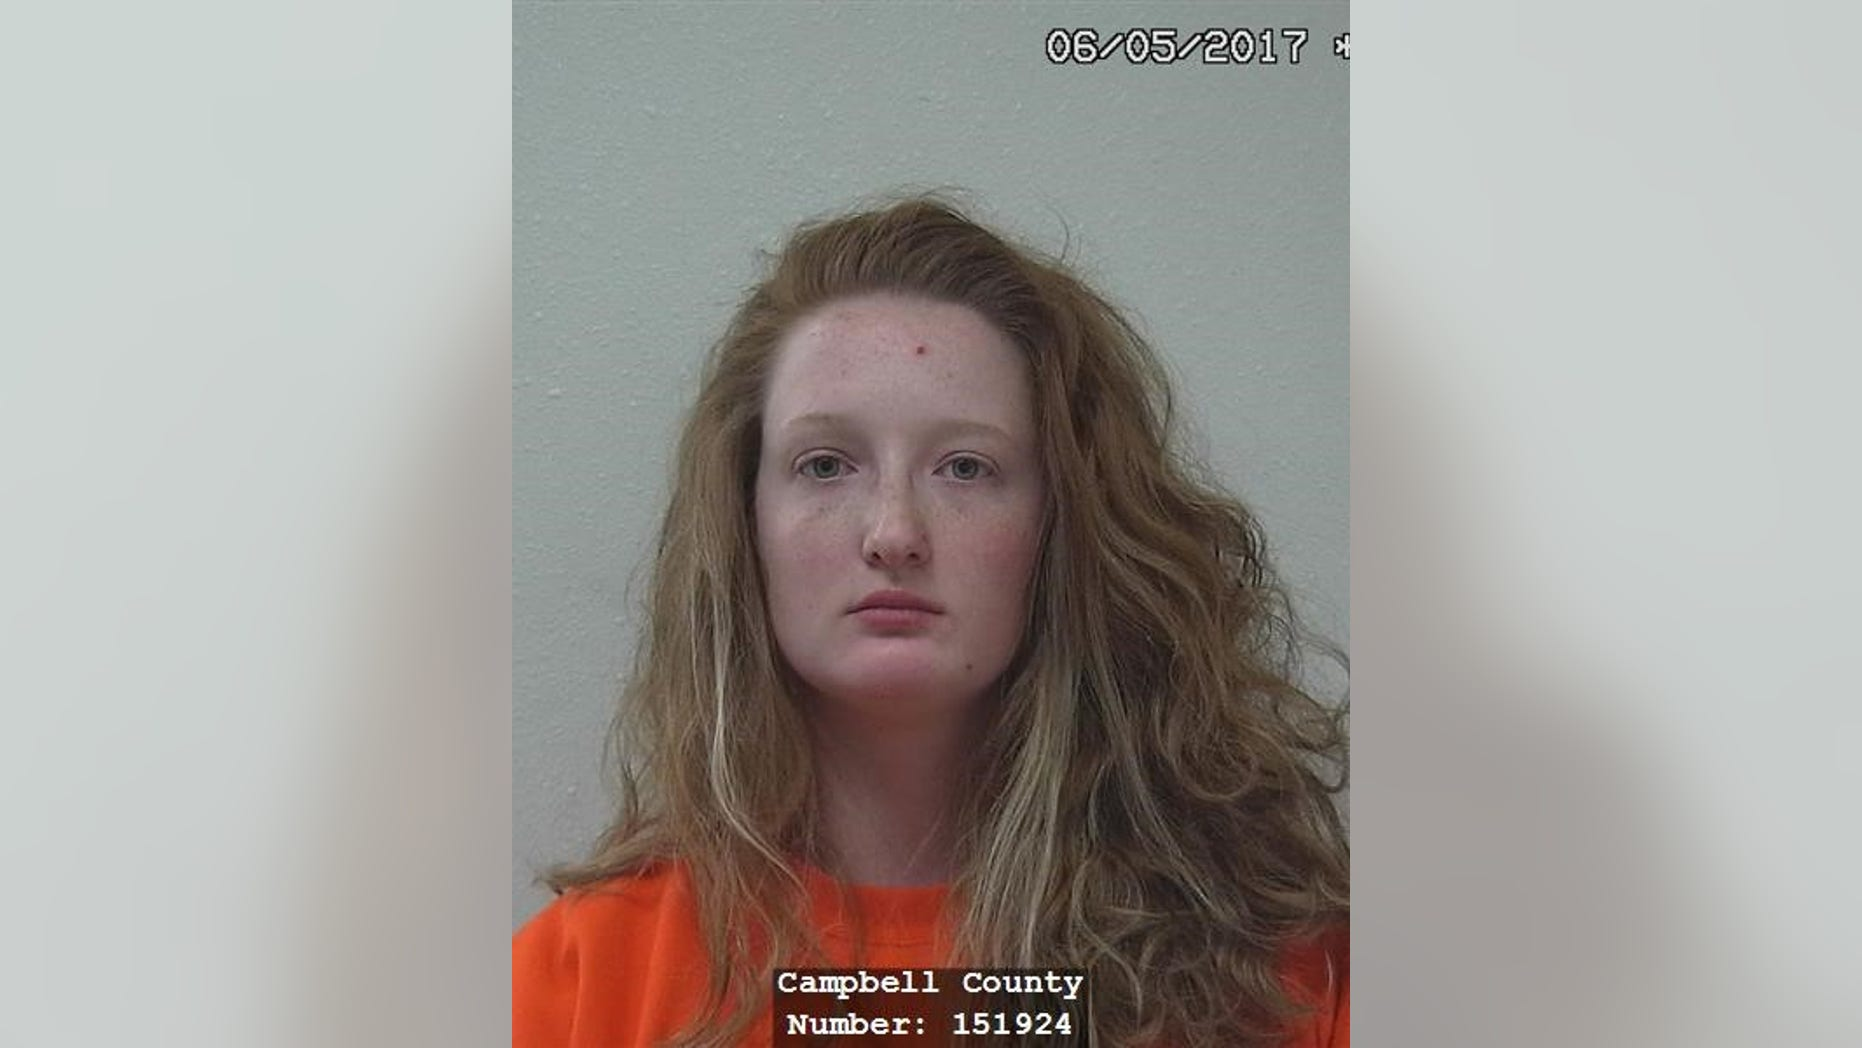 Lydia Marie Cormaney, 23, was caught shoplifting and claims she was studying kleptomania.